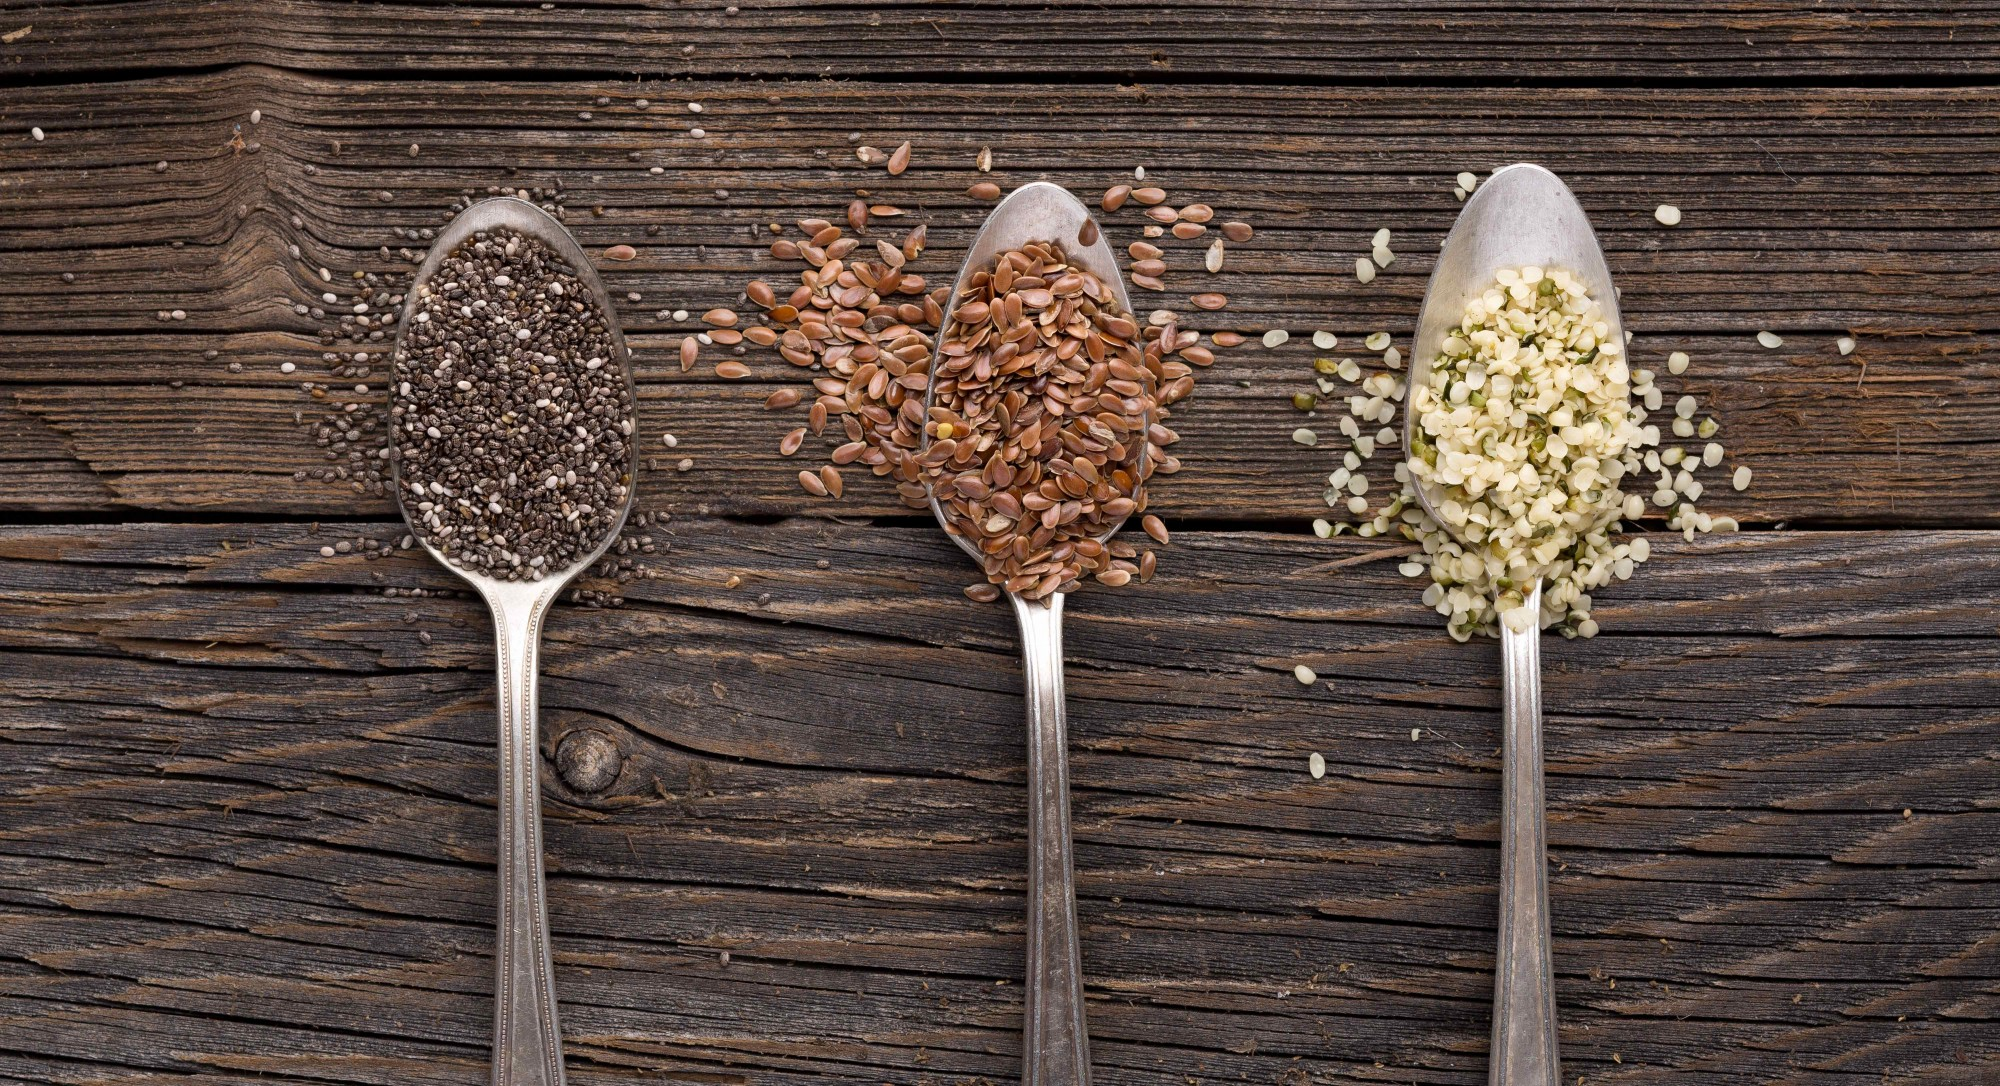 Eat Less Meat (But Still Get Your Protein) With These 3 Power Seeds